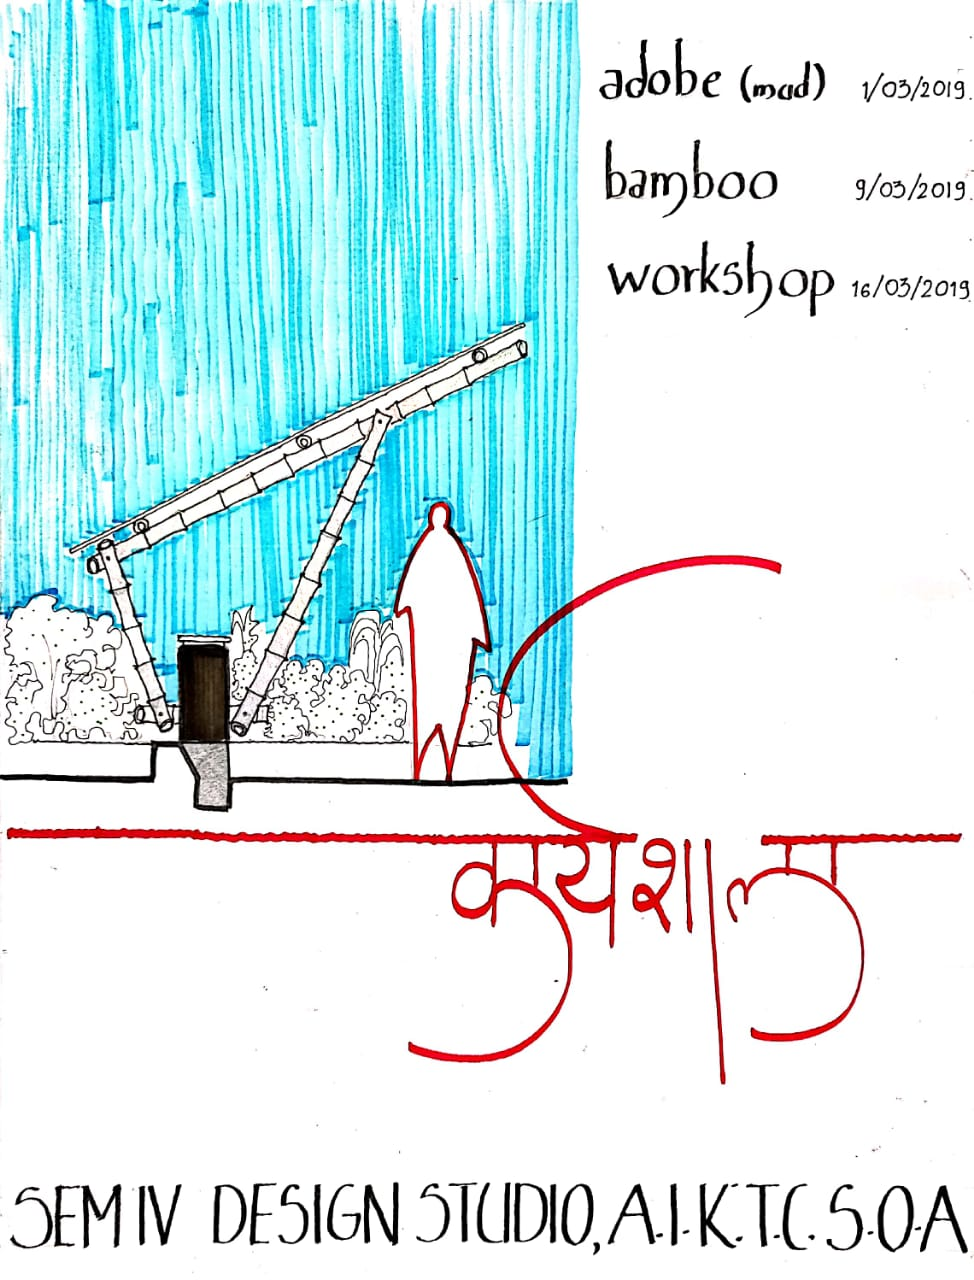 ABOBE AND BAMBOO WORKSHOP FOR SECOND YEAR B-ARCH AT A.I.K.T.C SOA